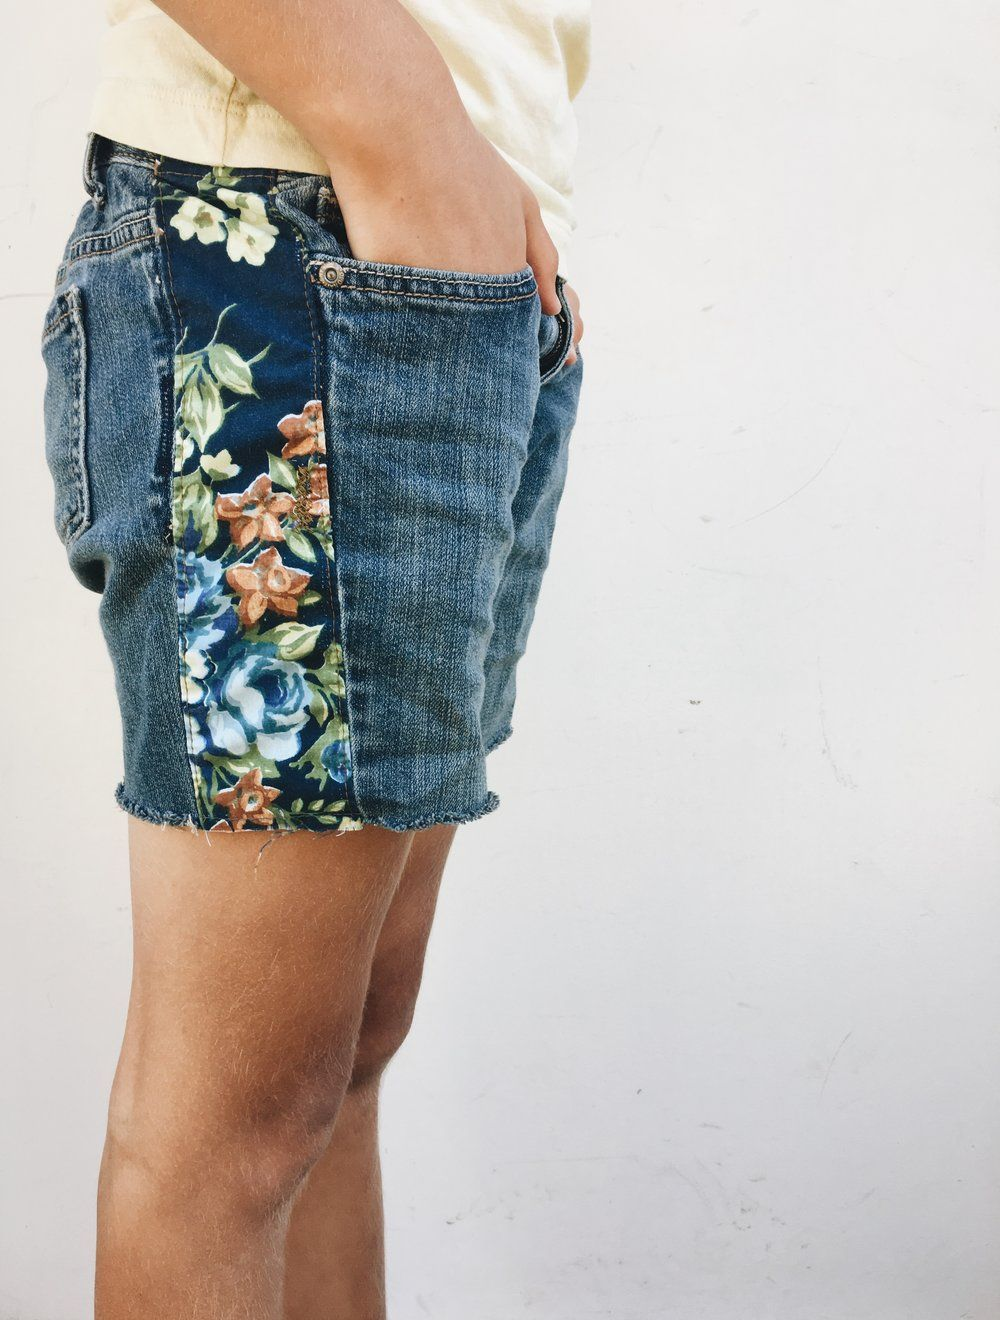 How to Make Boho Inspired Jean Cutoff Shorts  — Blue Corduroy #mygirl